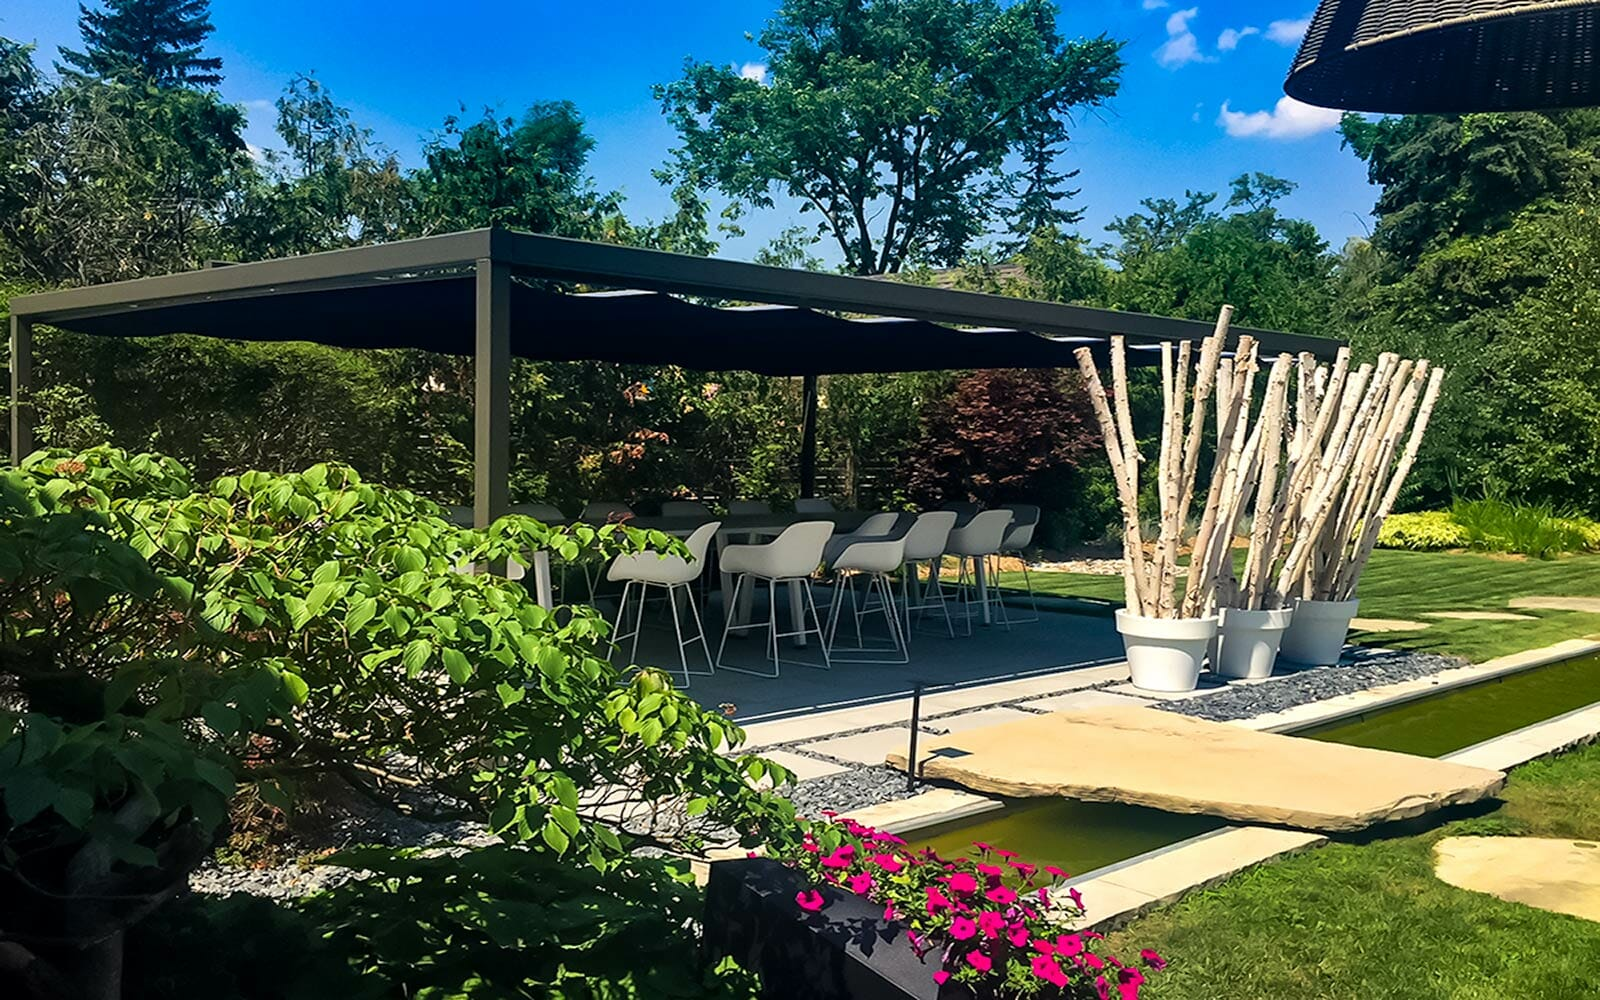 Landscaping Design Project; Featuring Pergola & Interlocking by Toronto Landscaping Company.